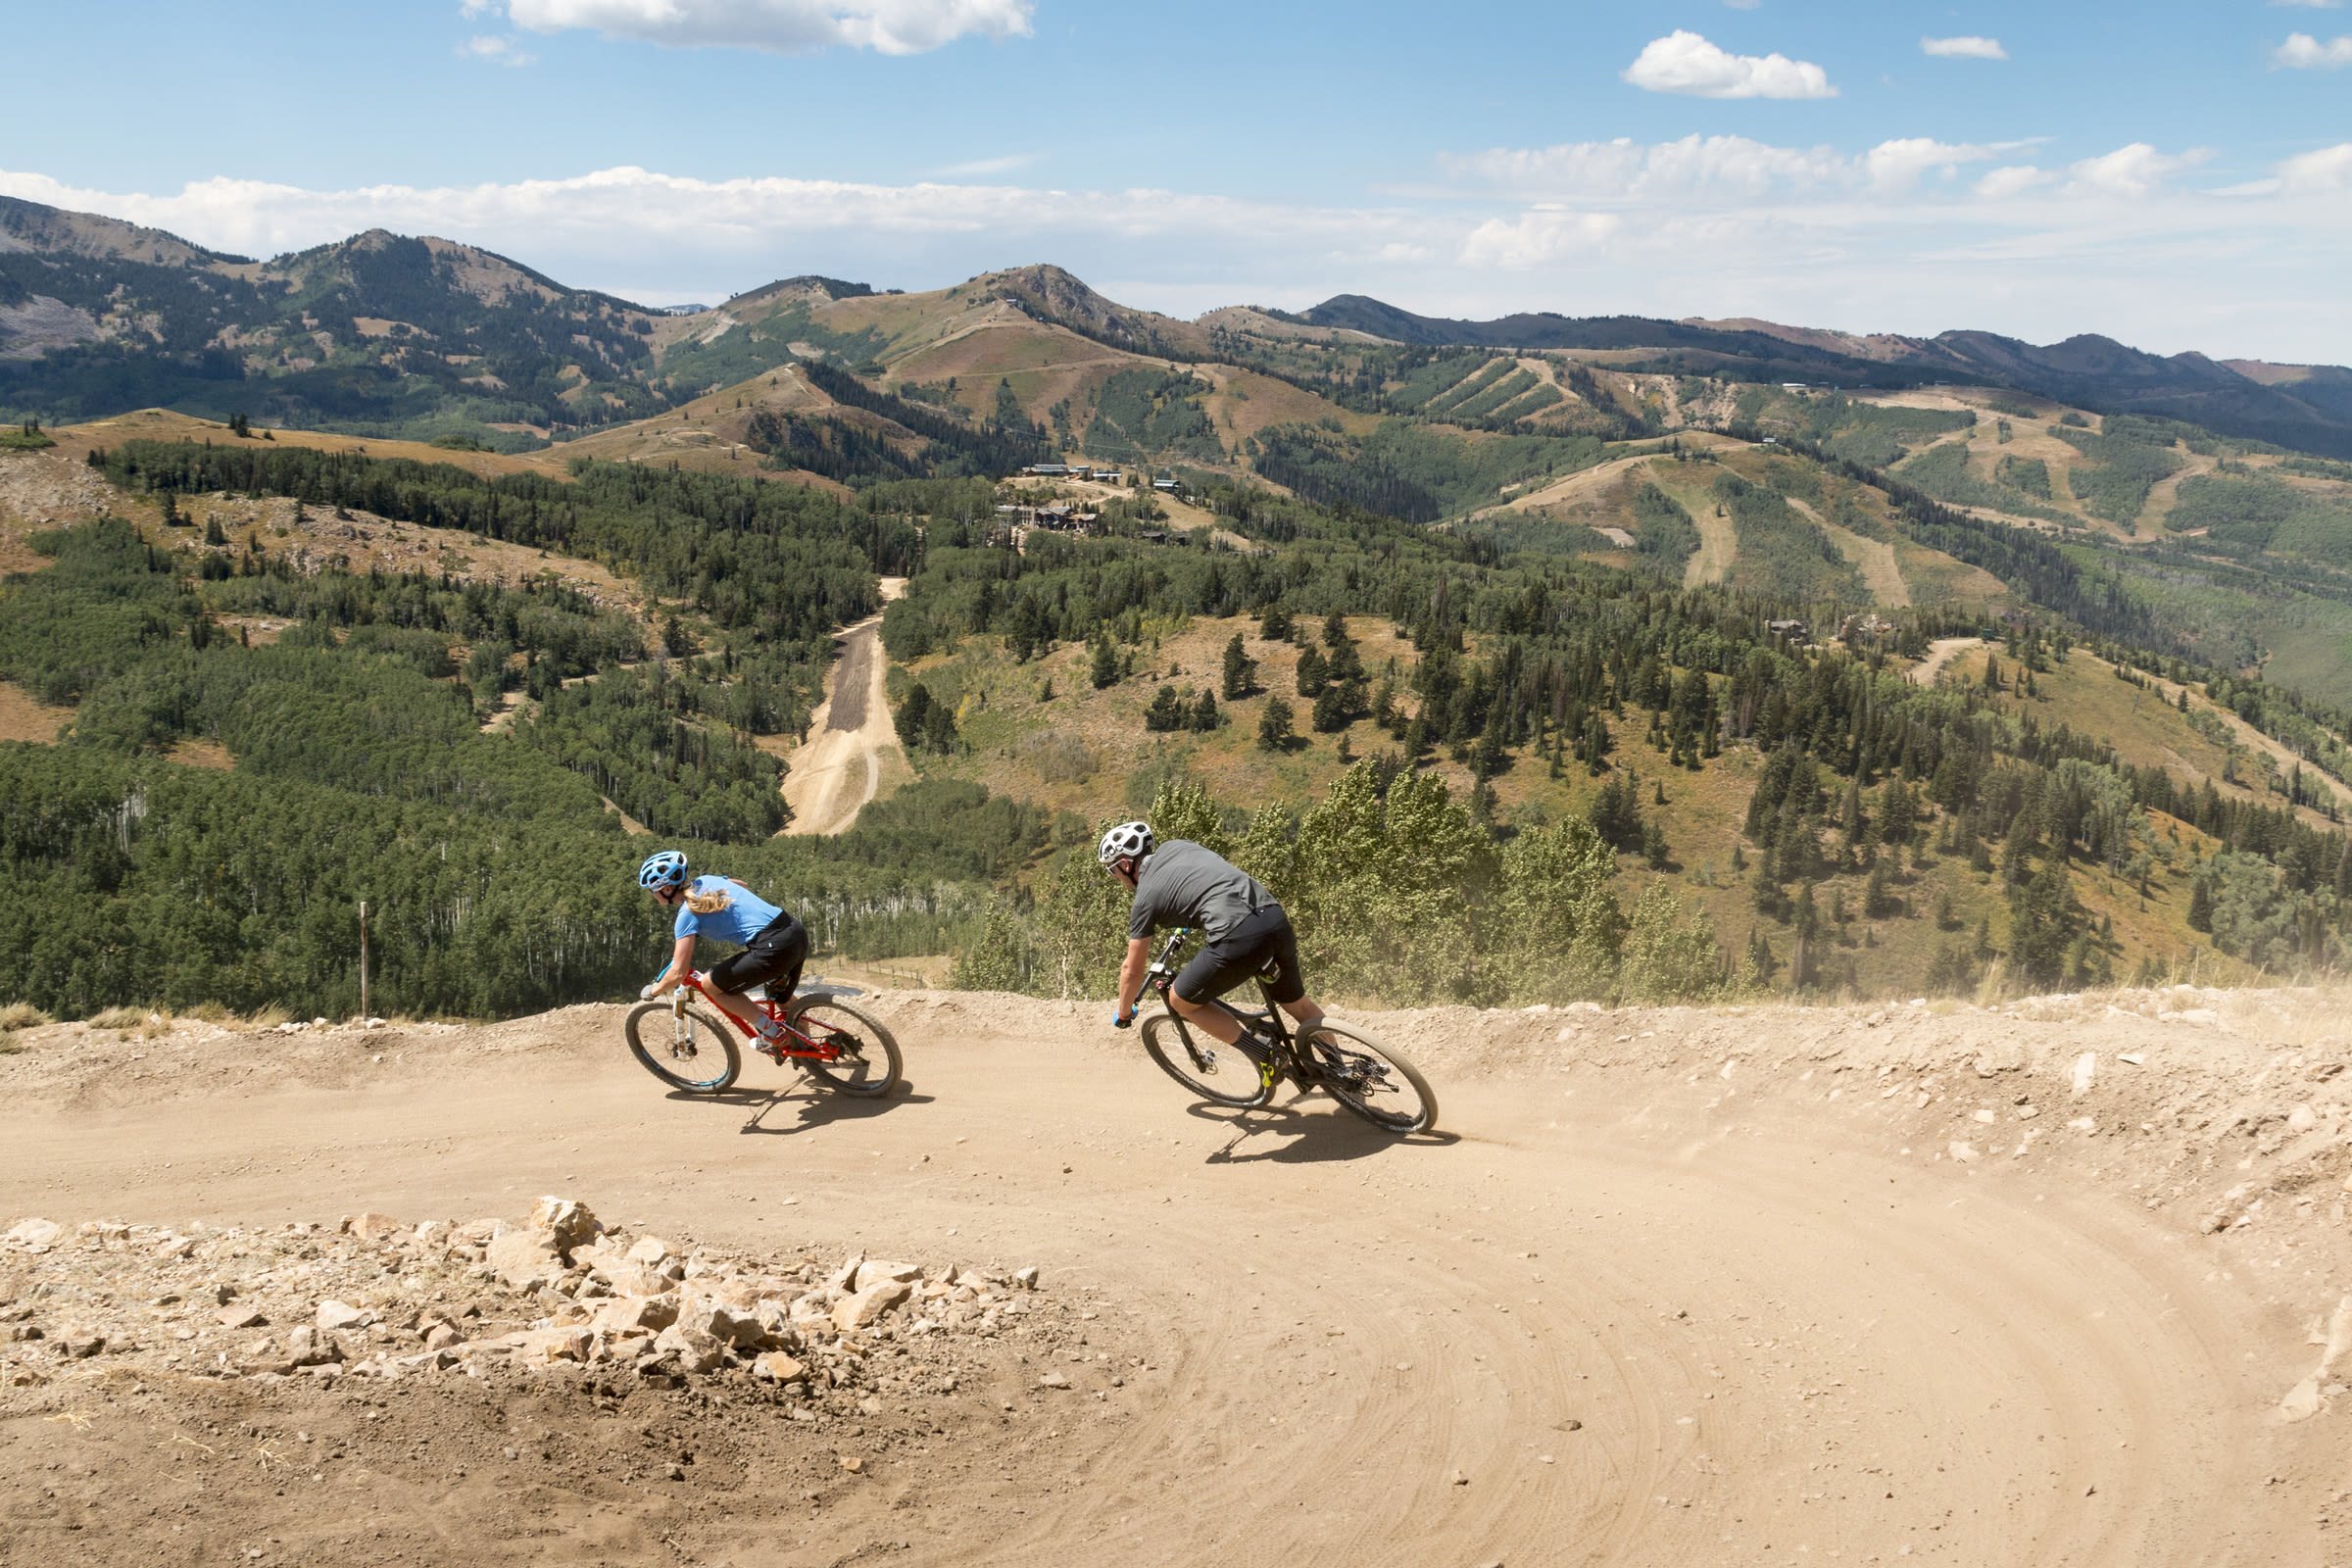 Deer valley mountain biking qfnltx